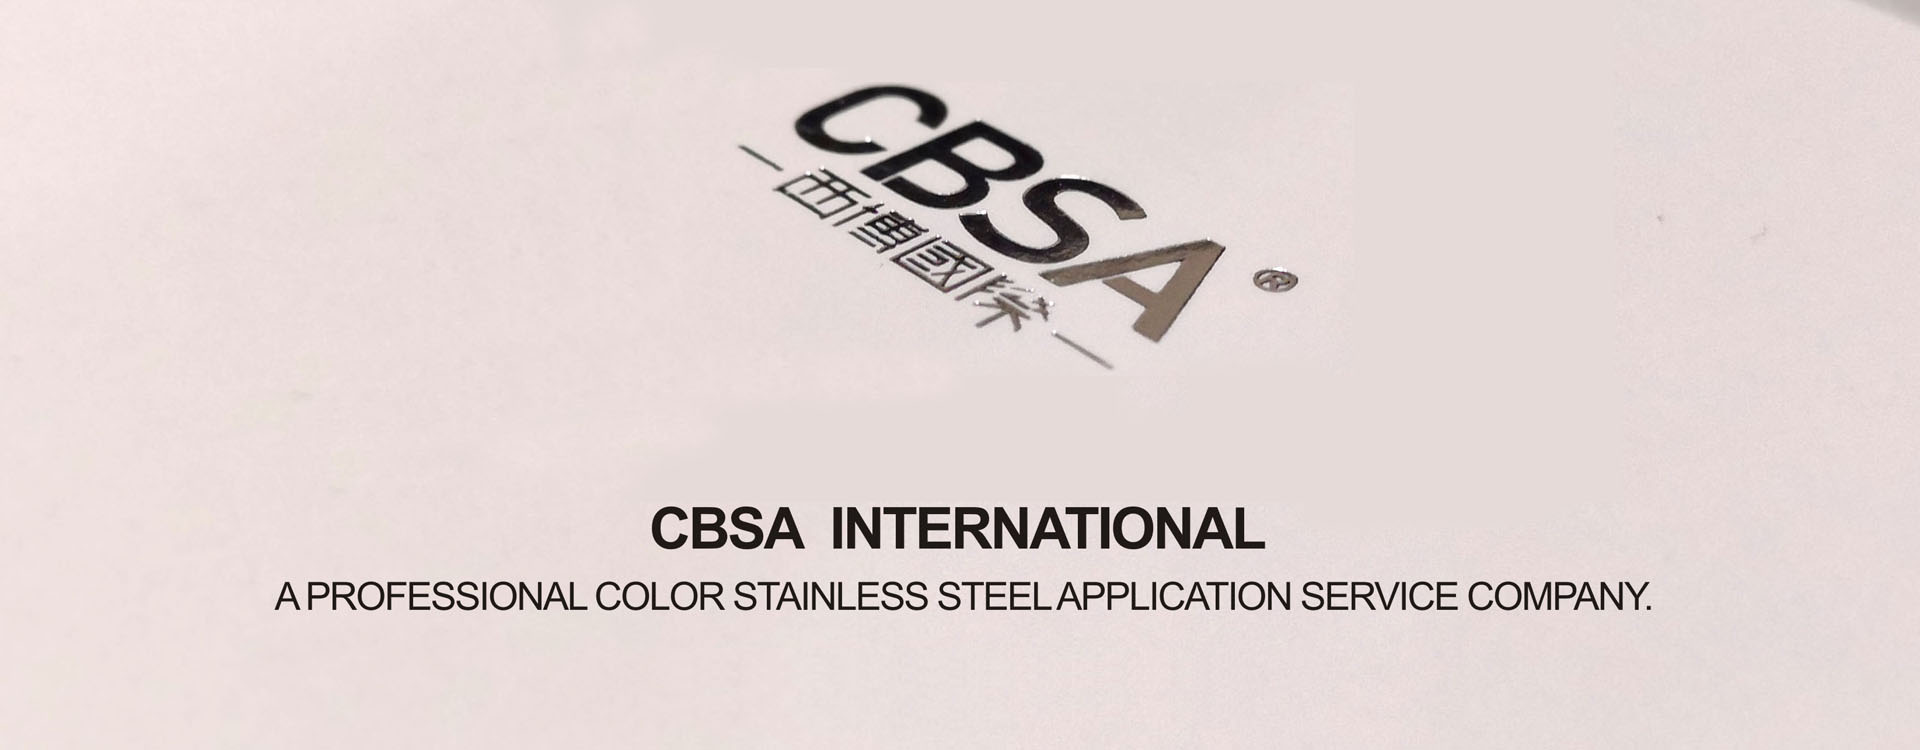 Colored stainless steel product design application service